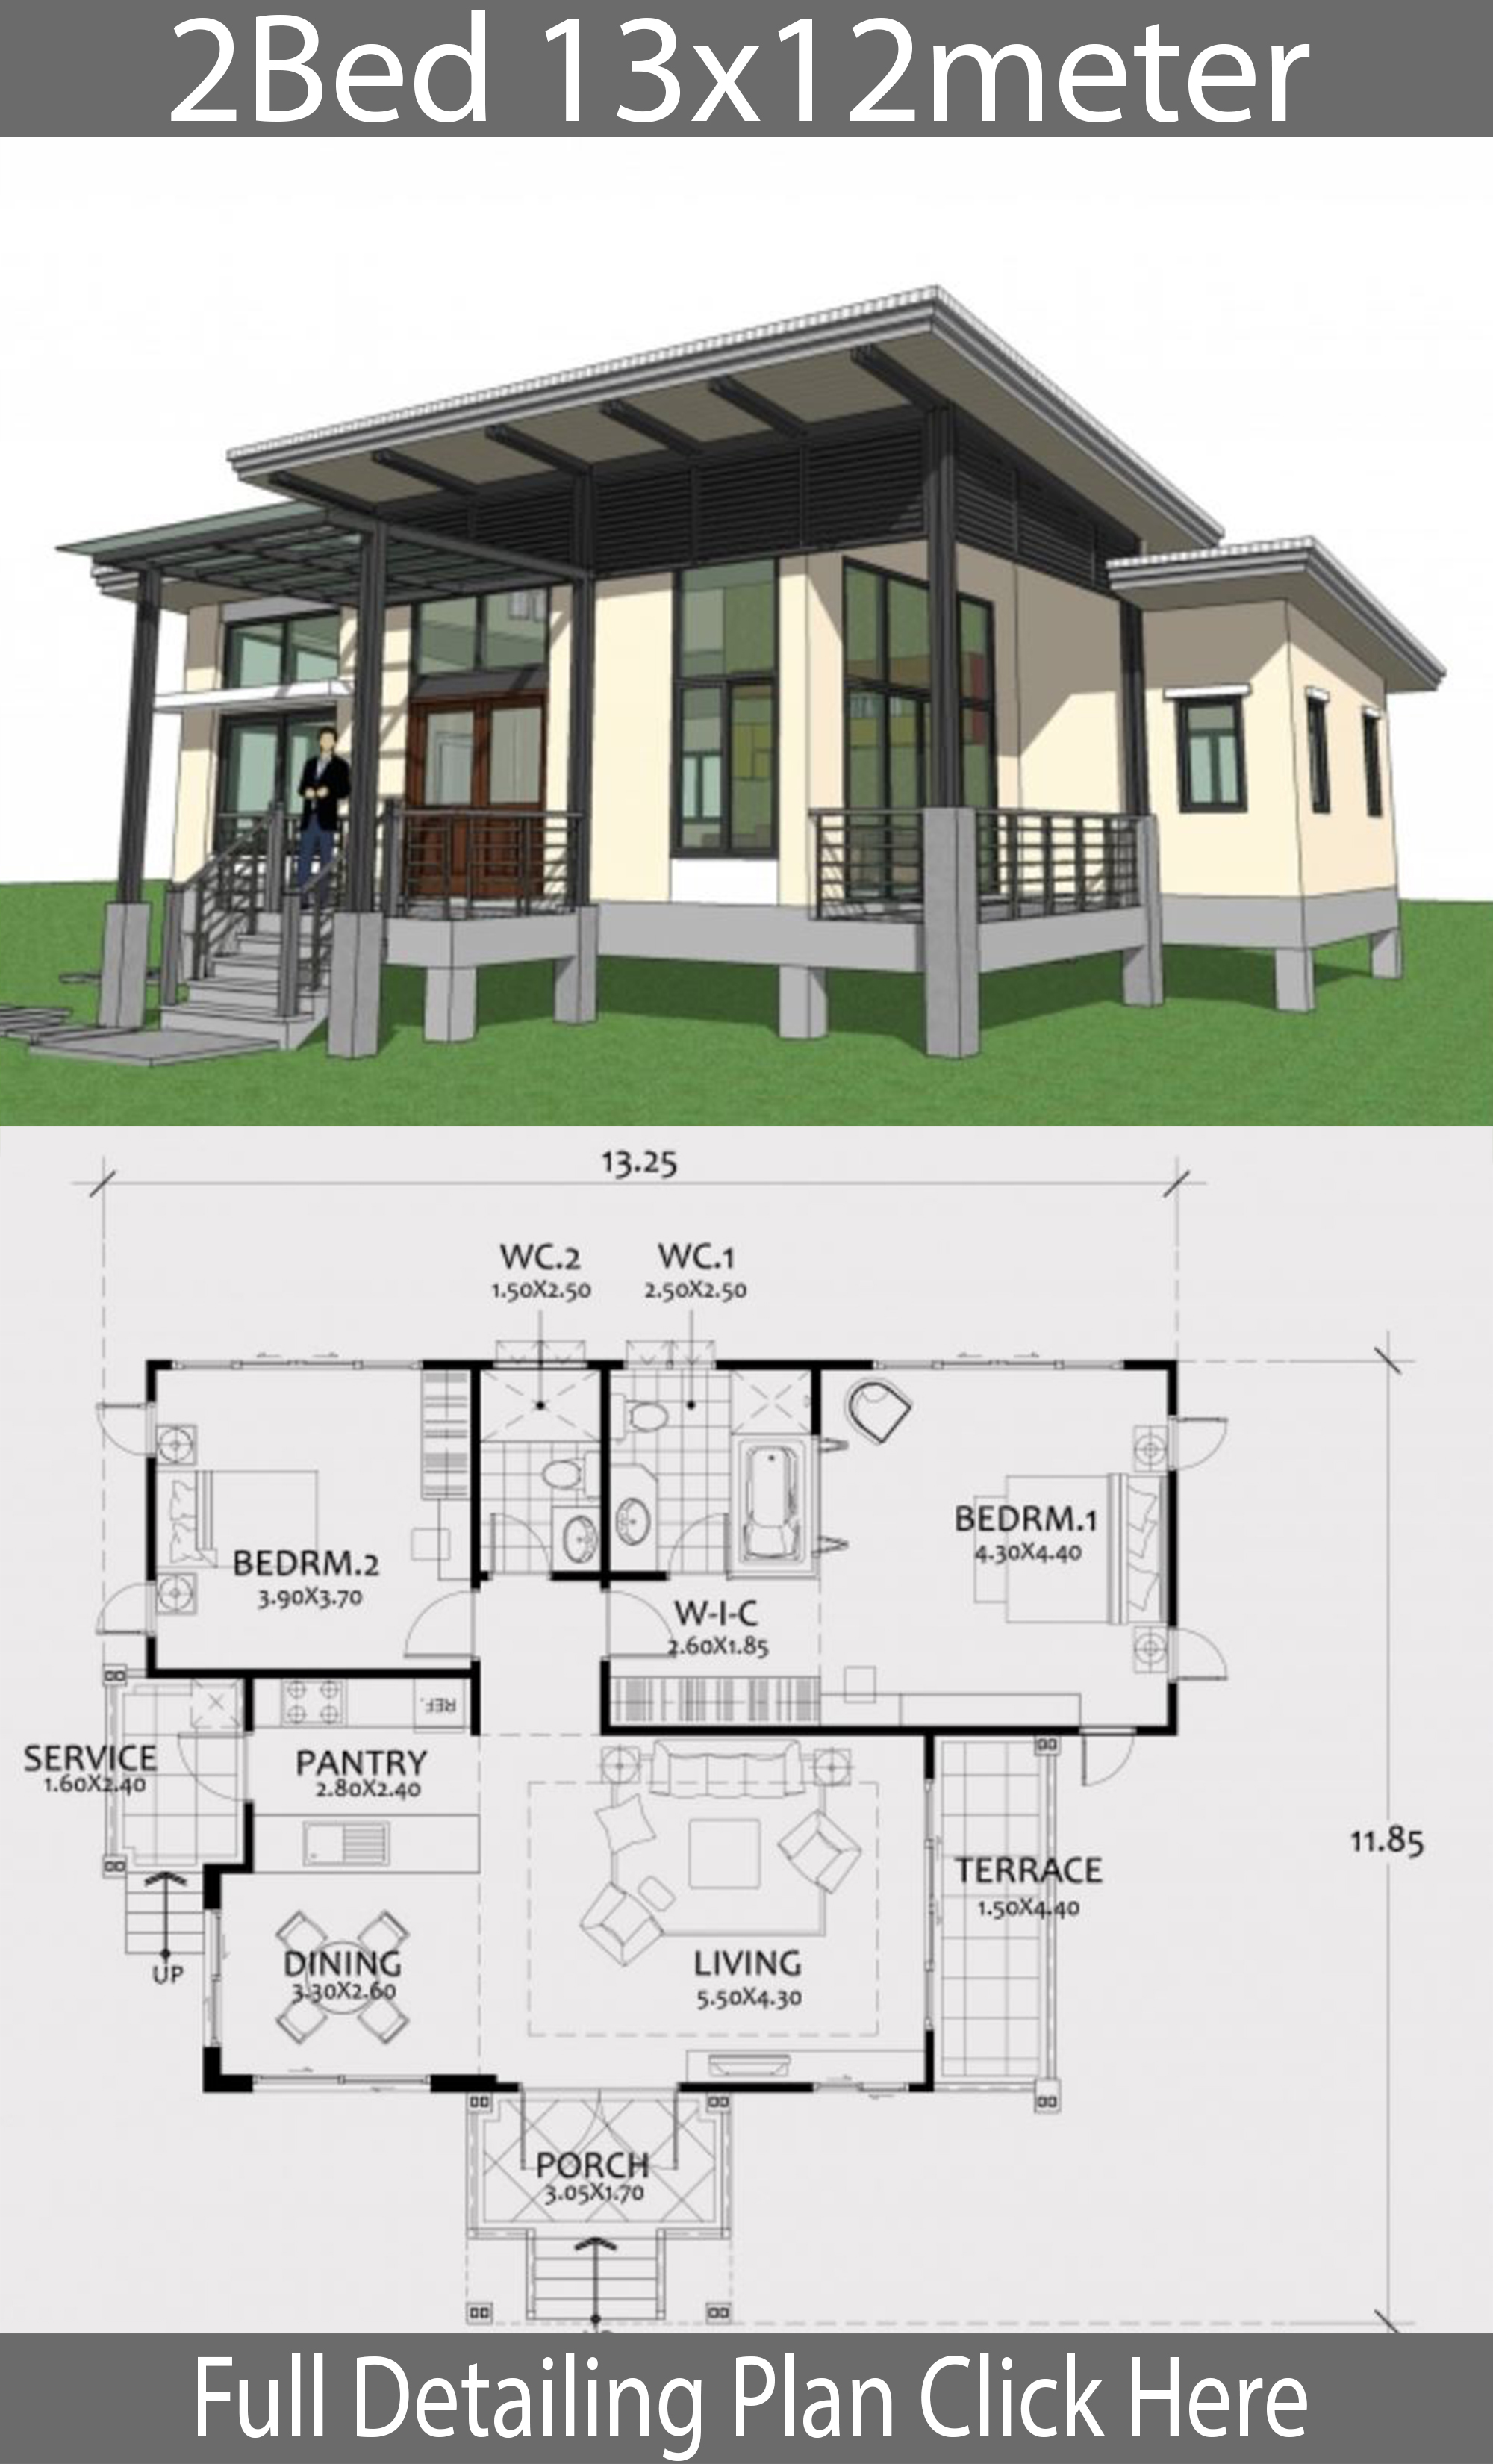 One story house plan 13x12m with 2 bedrooms - House Plans 3D